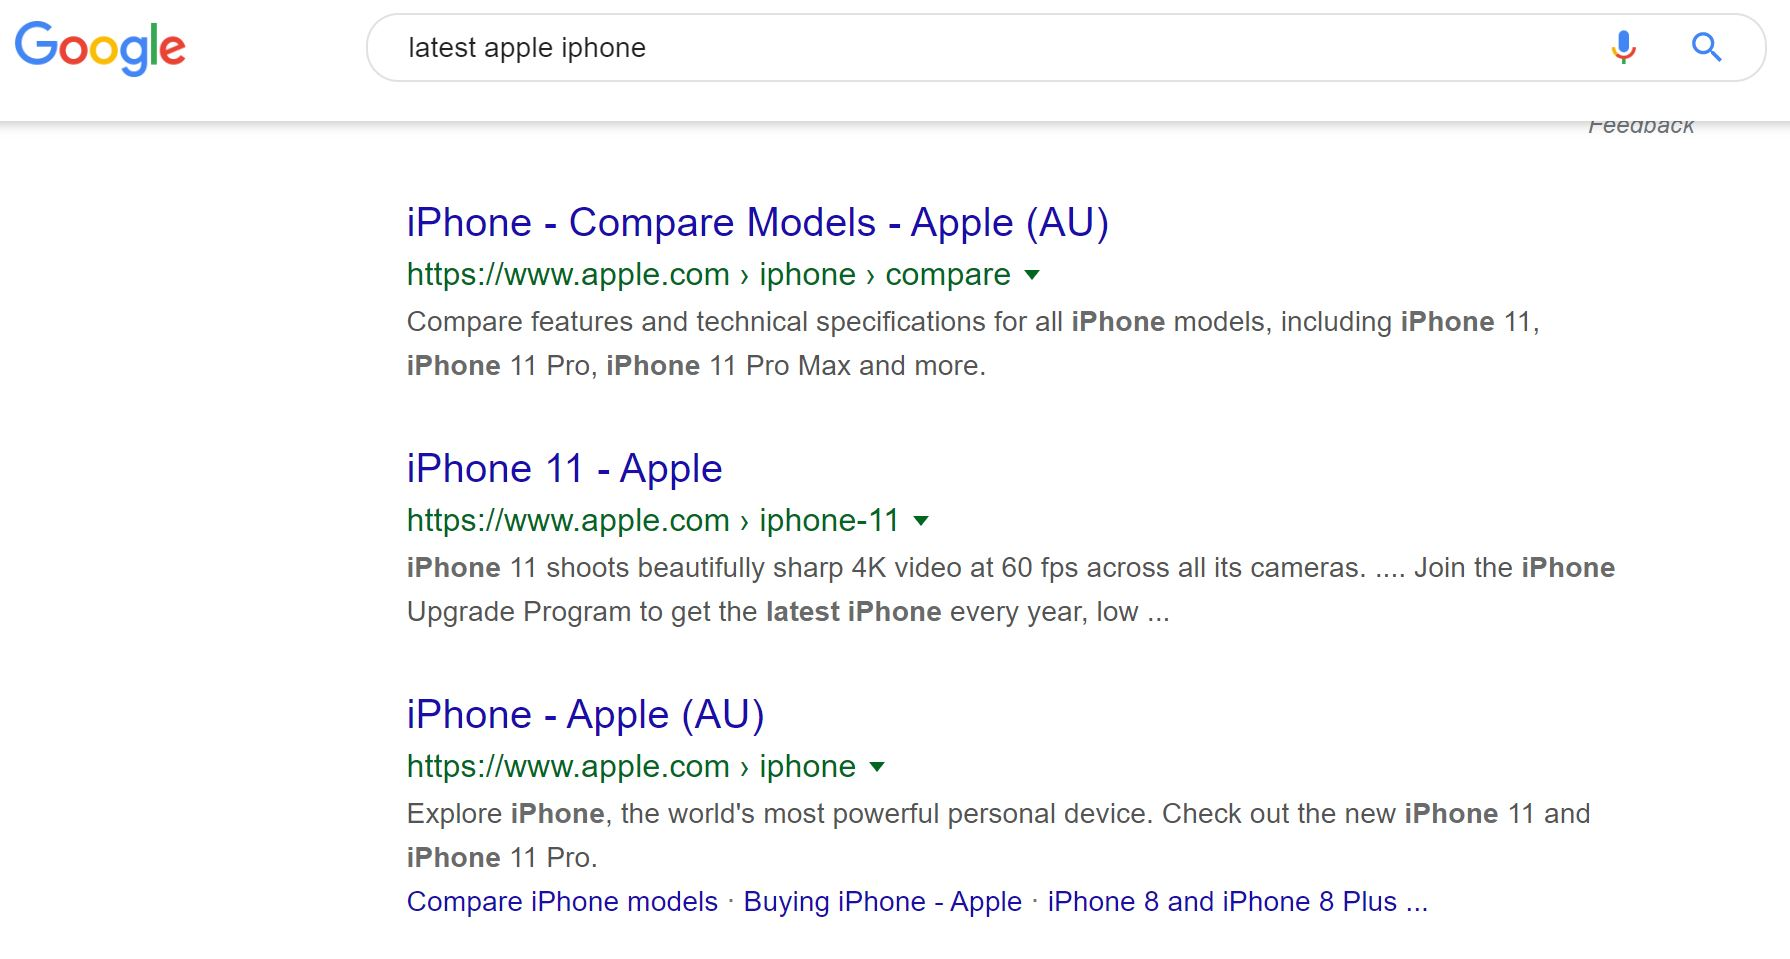 Latest Apple iphone Google Search Results